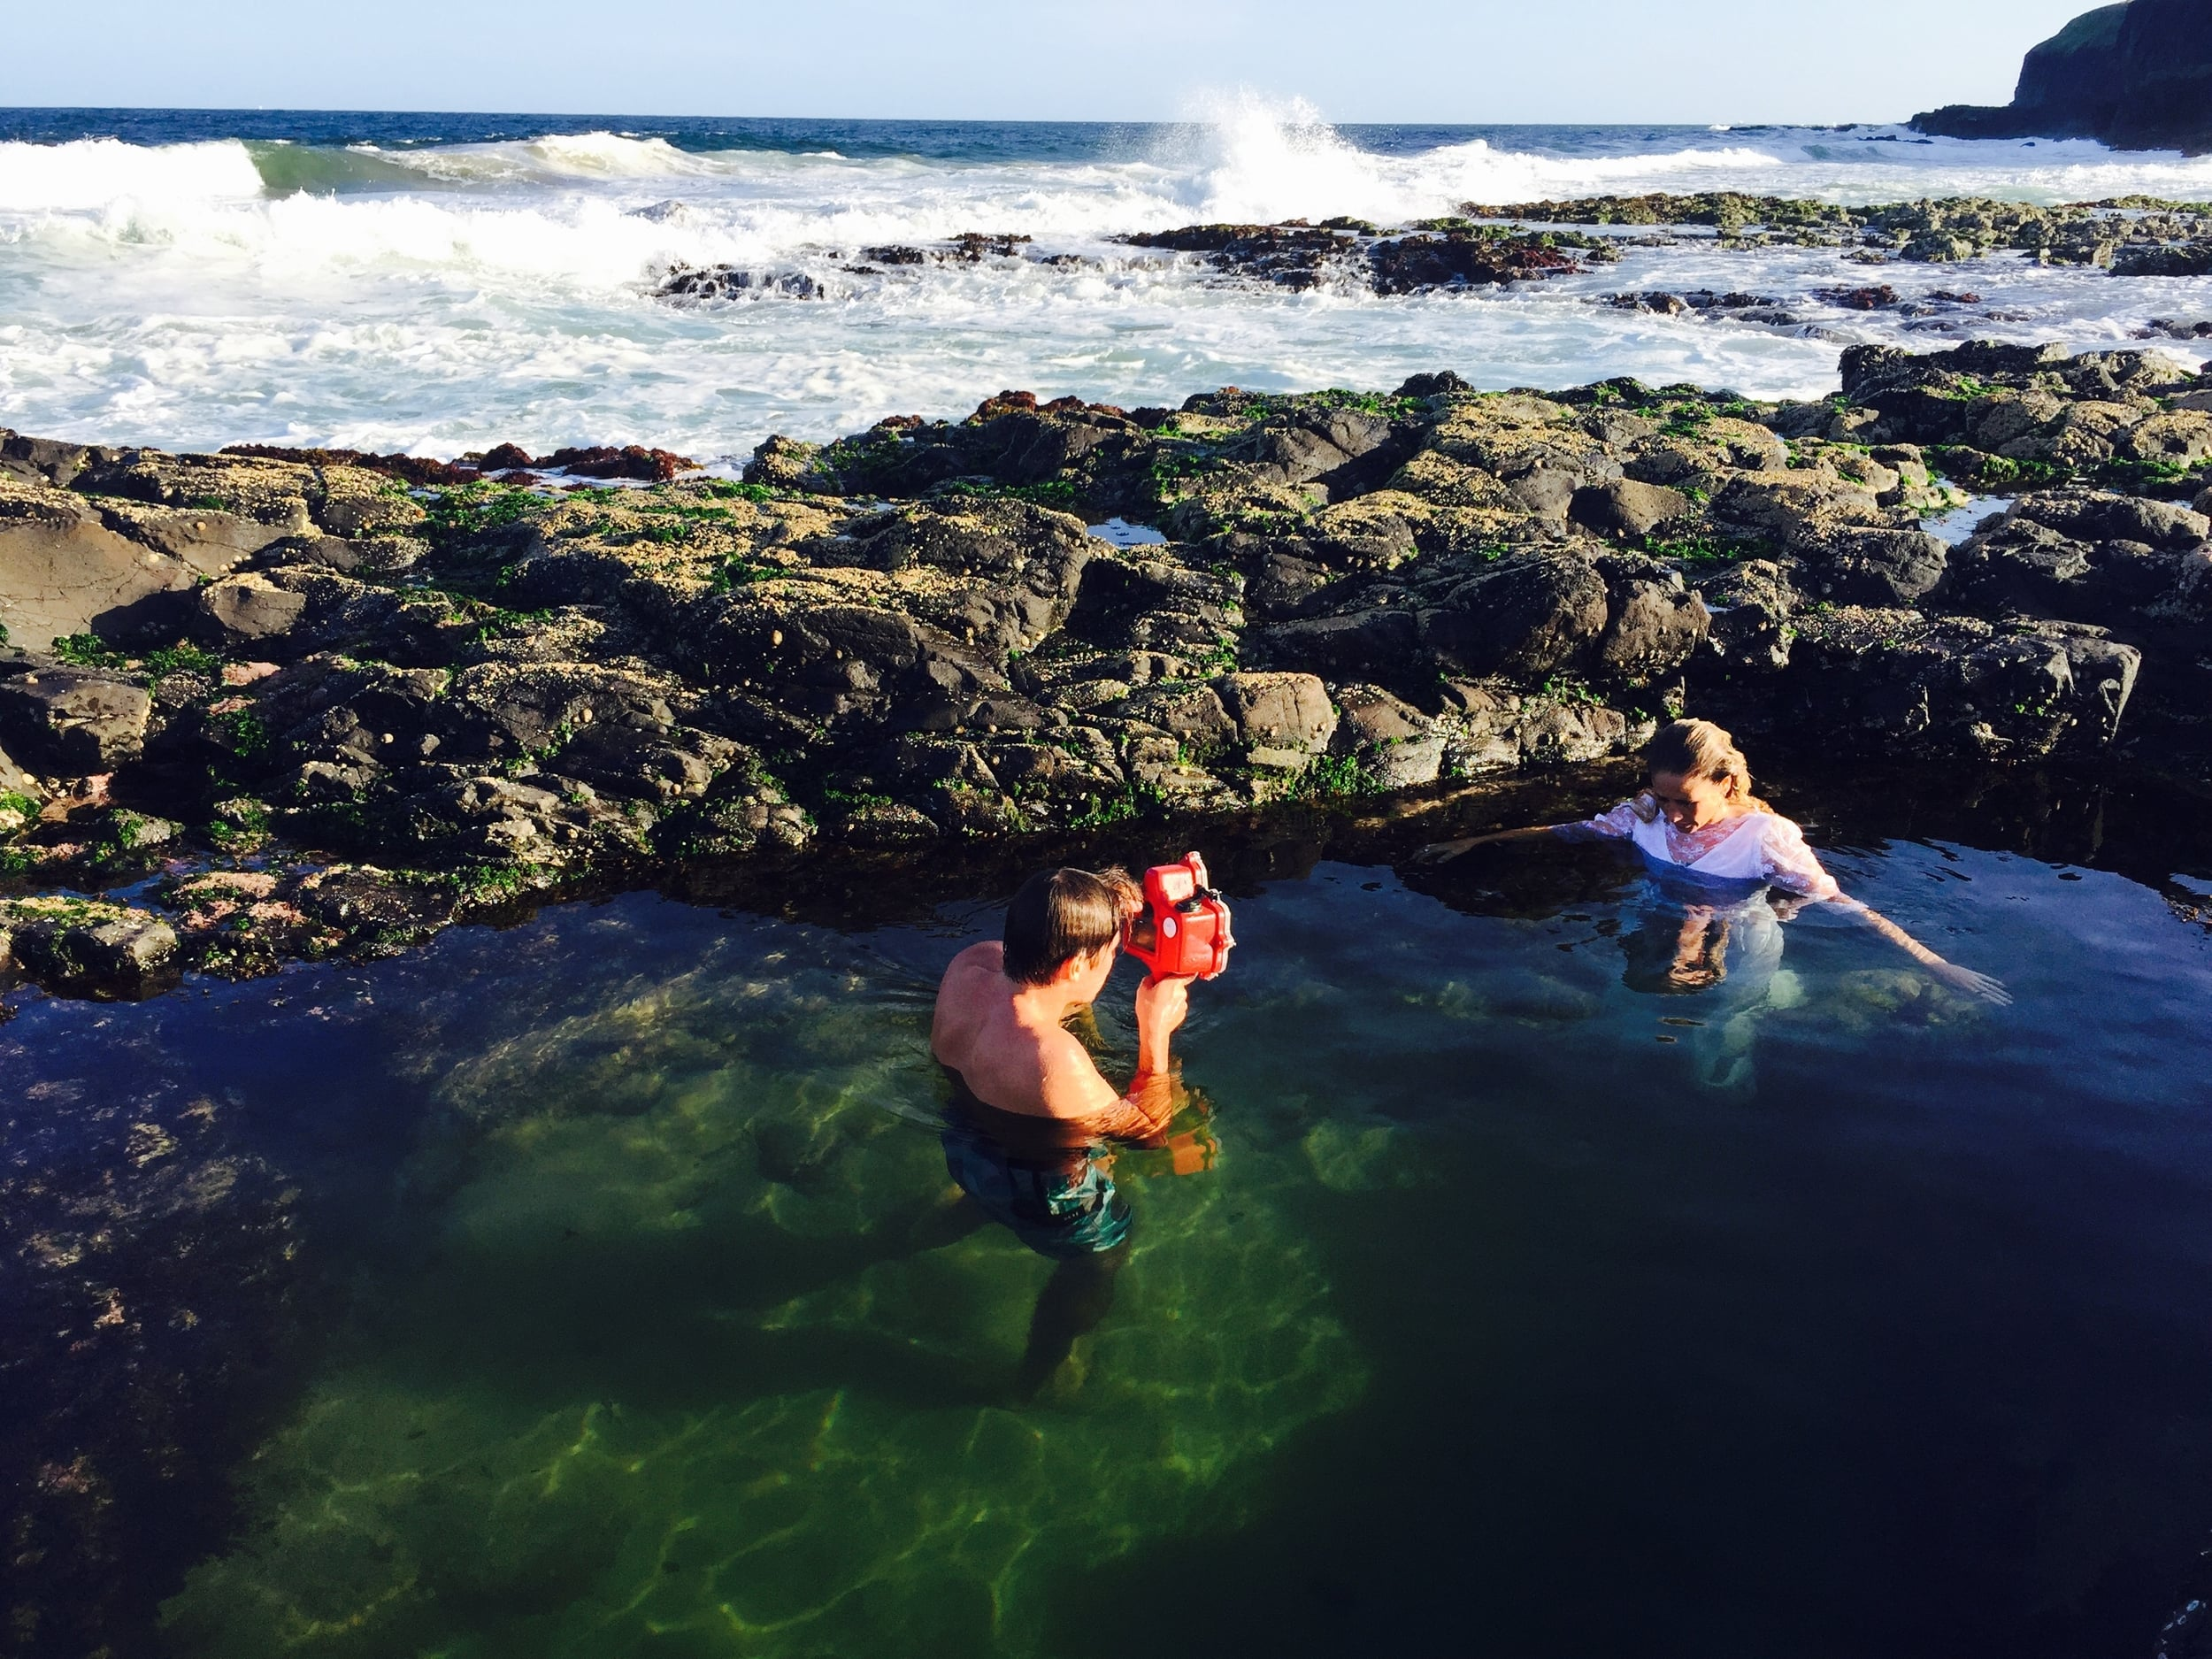 Shannon Mackie shooting Karlee in a beautiful rock pool on location.